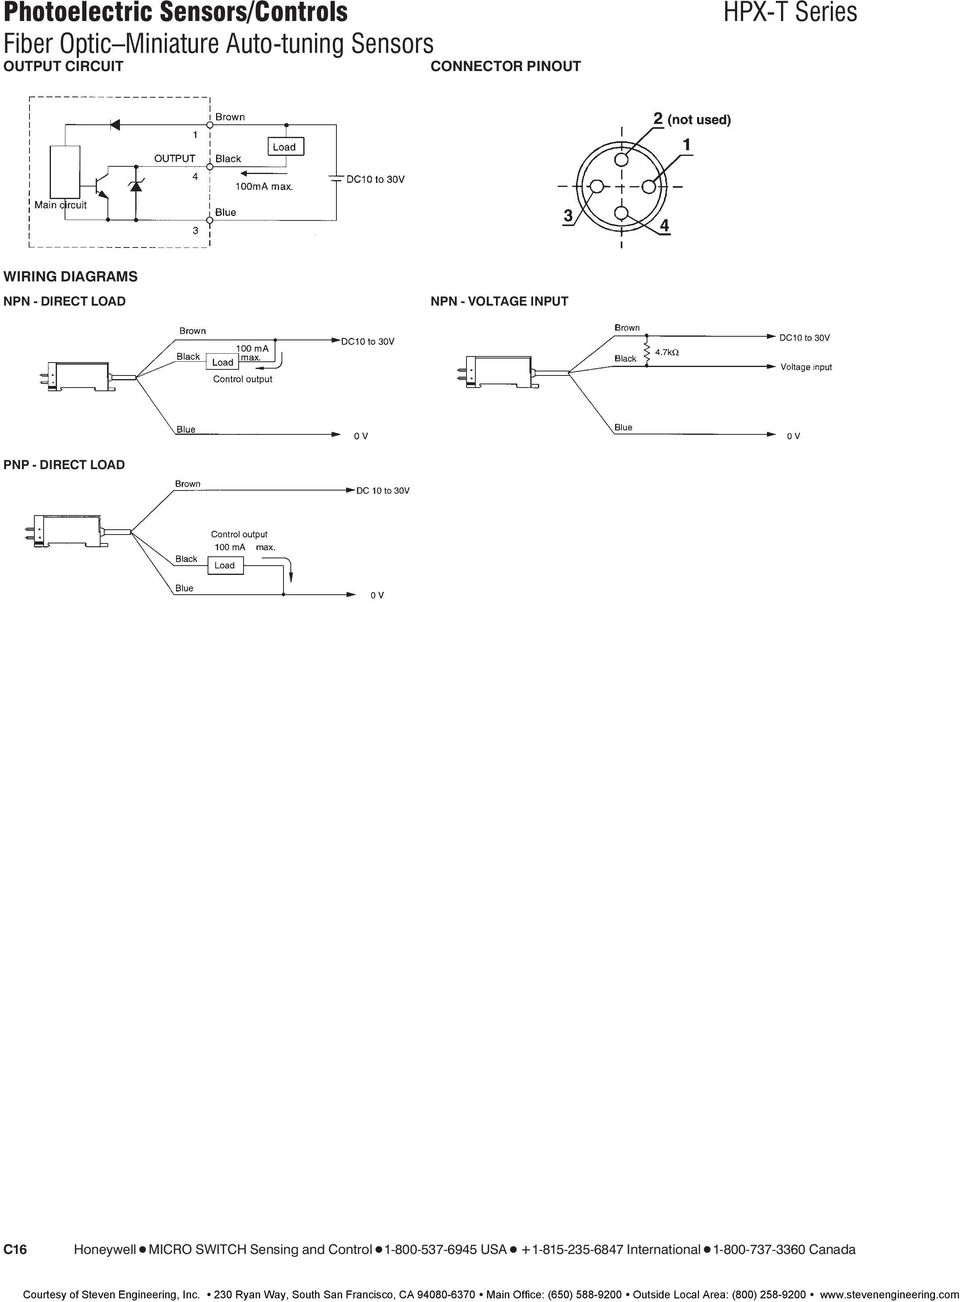 Photoelectric Sensors Controls Fiber Optic Miniature Pdf 110mm Wire Lever Microswitch Tend Hpx T Series Wiring Diagrams Npn